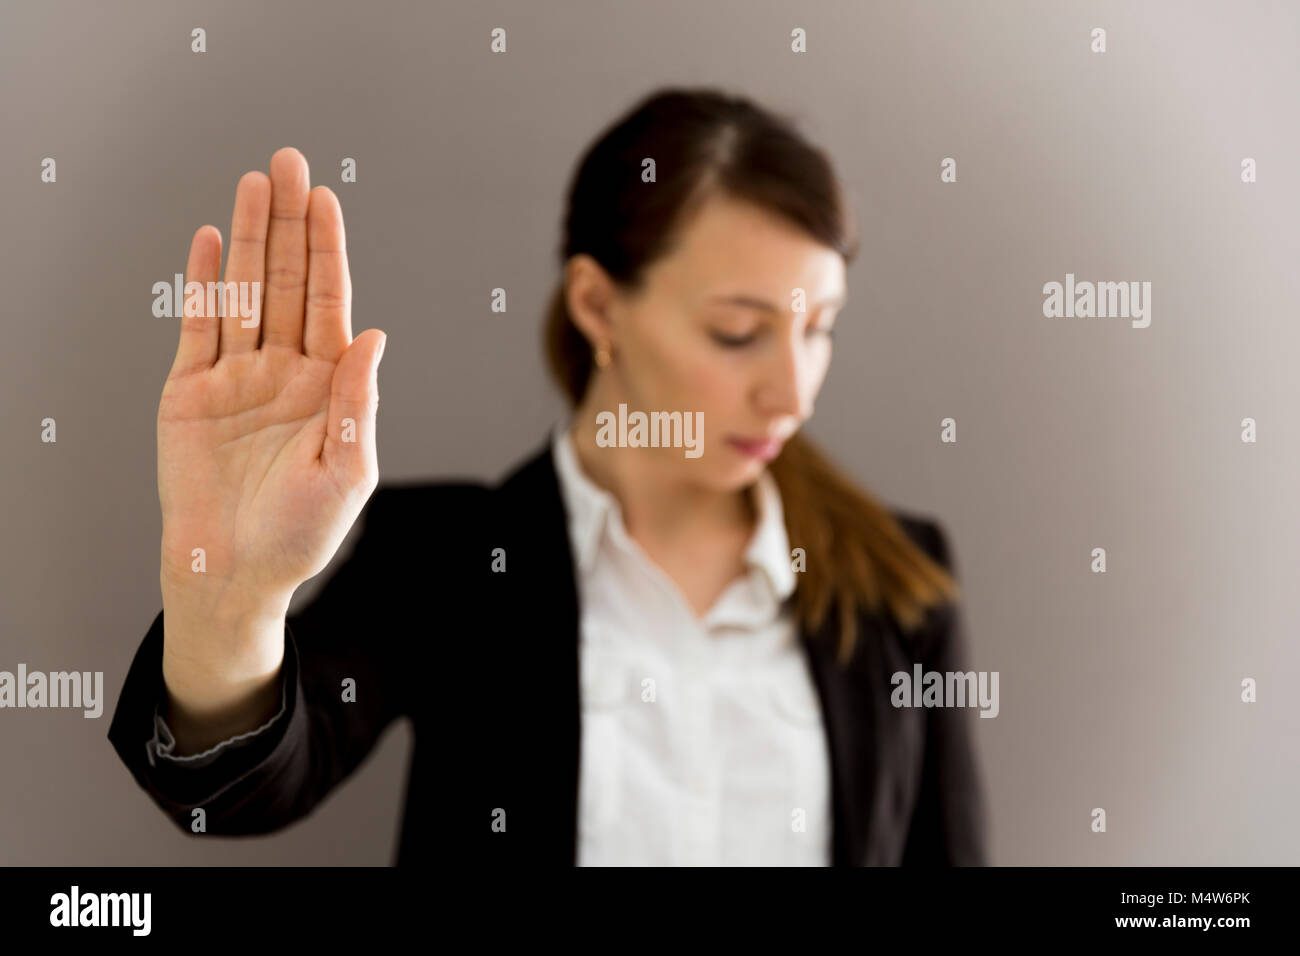 Woman in business suit showing her palm, body language, say NO at work, self-awareness - Stock Image